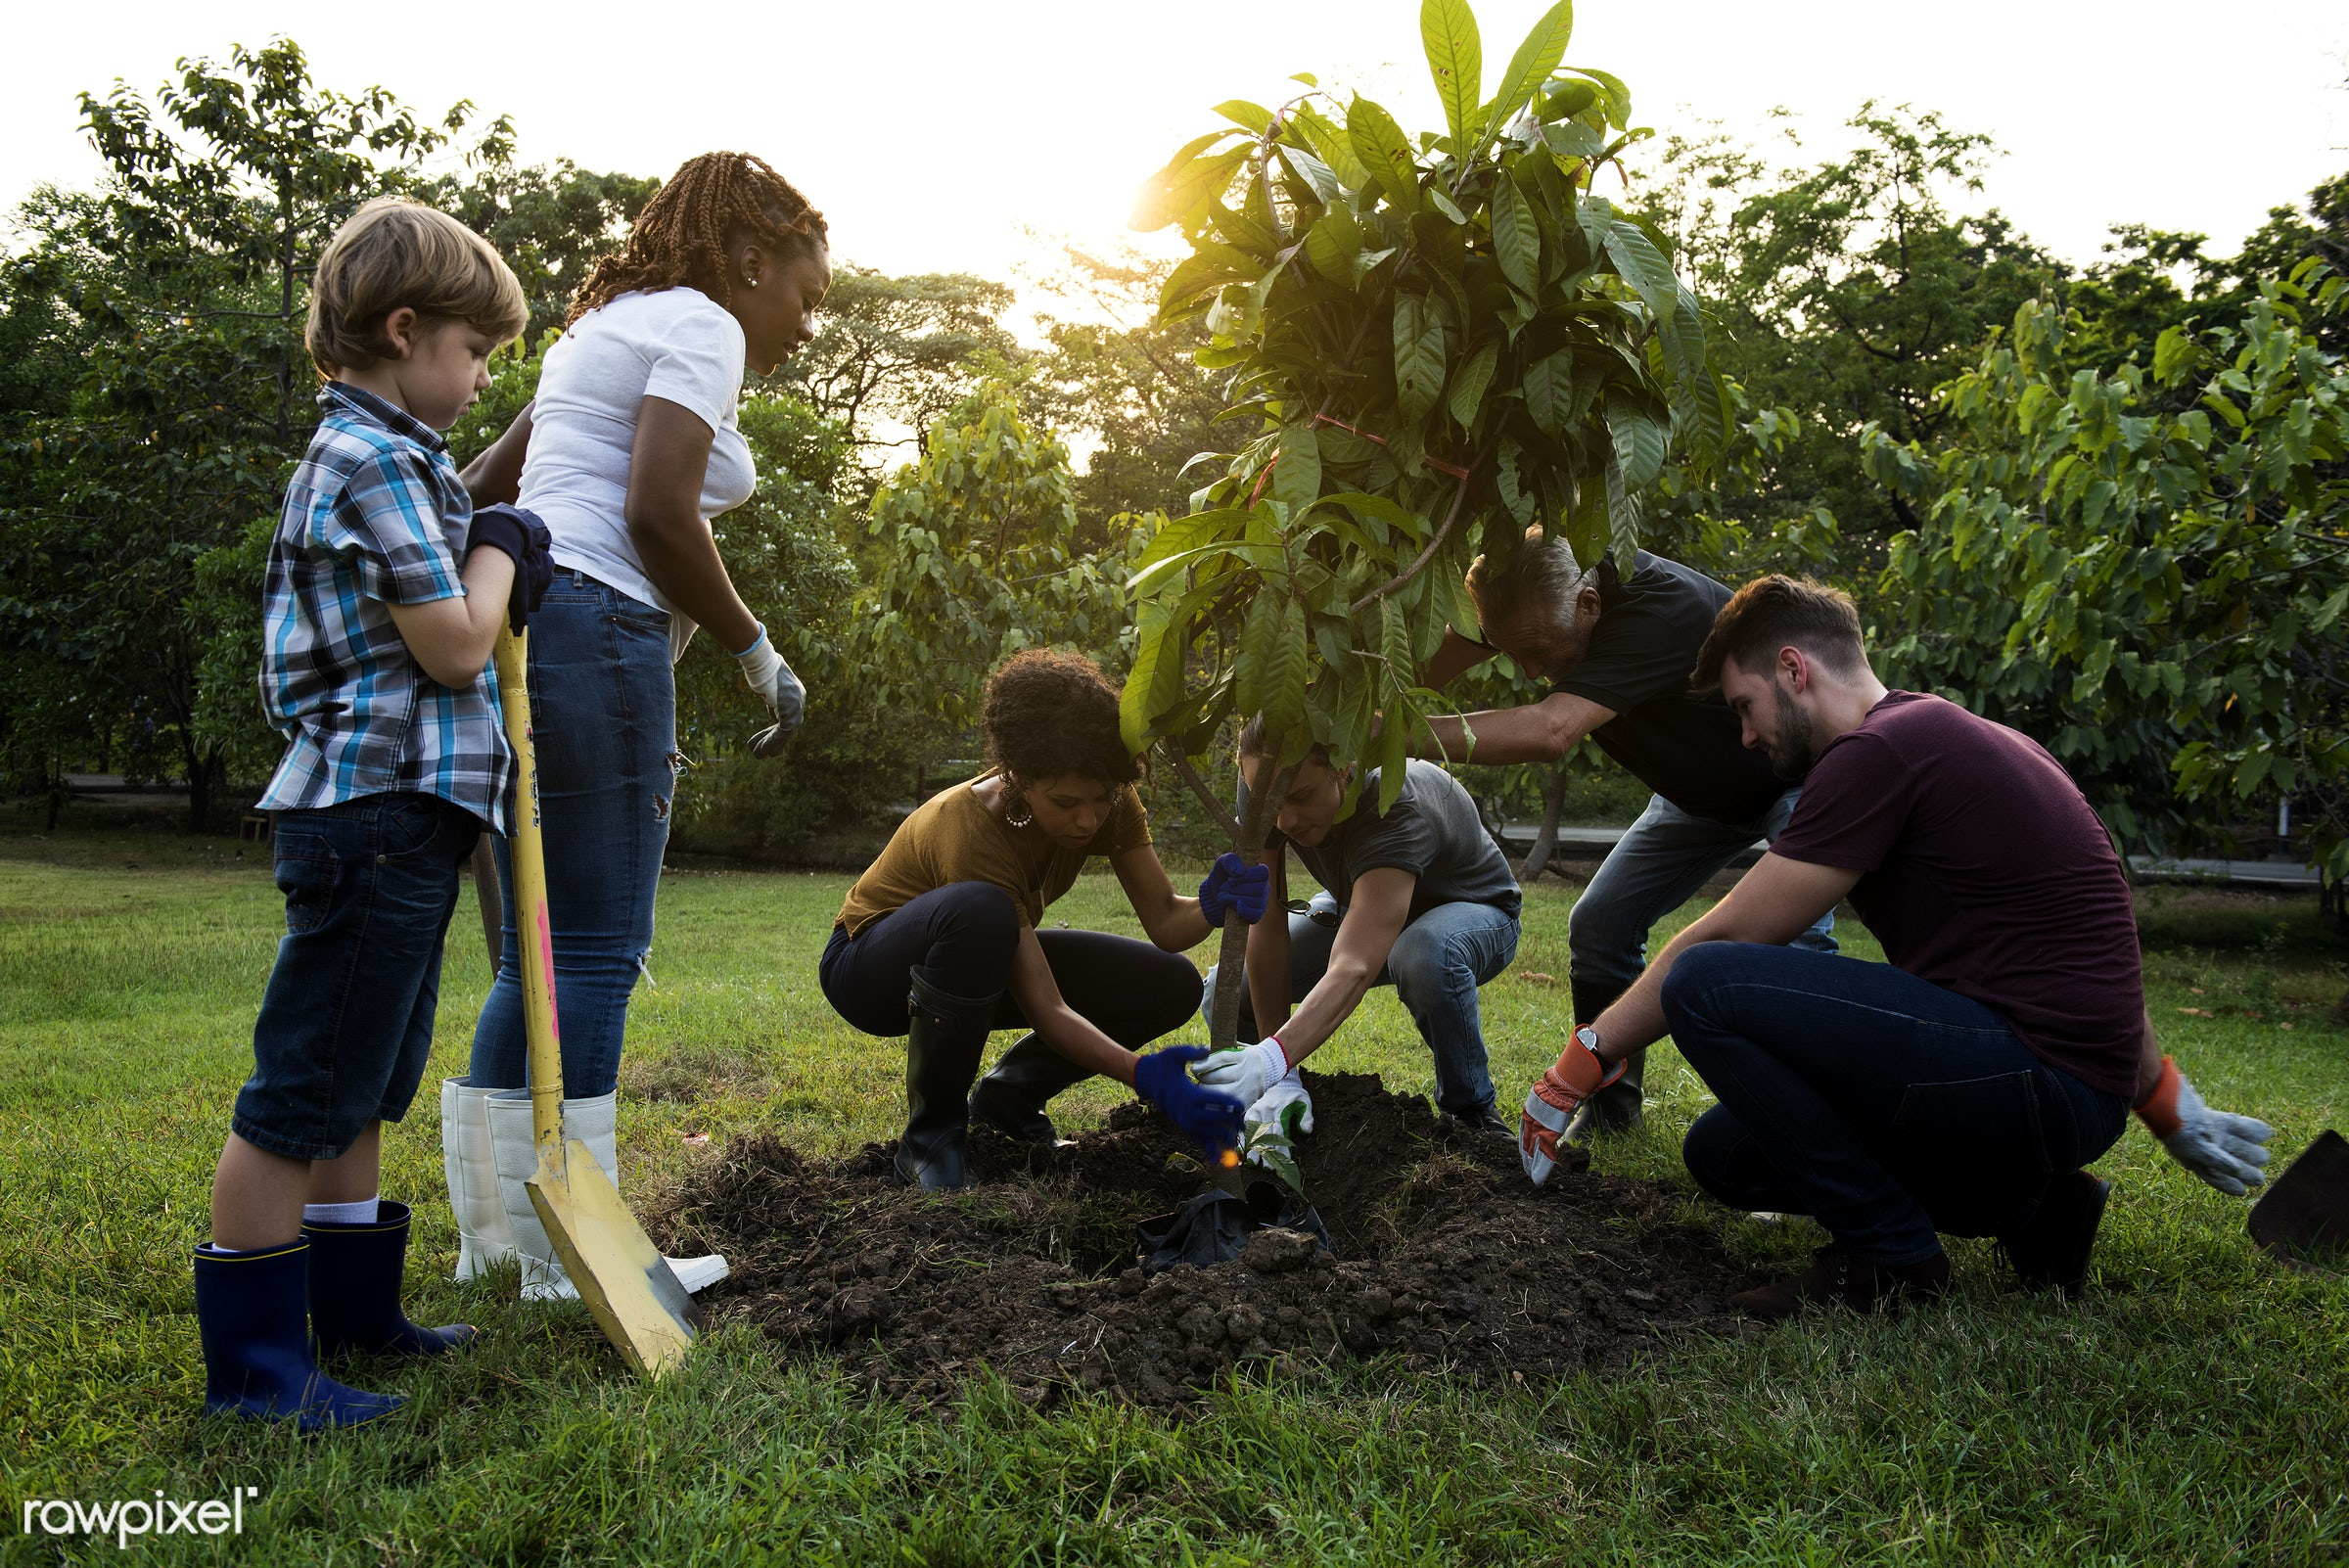 plant, person, plants, leaves, spring, people, caucasian, hand, farm, farmer, tree, hands, fresh, tree bed, dig, dirt,...